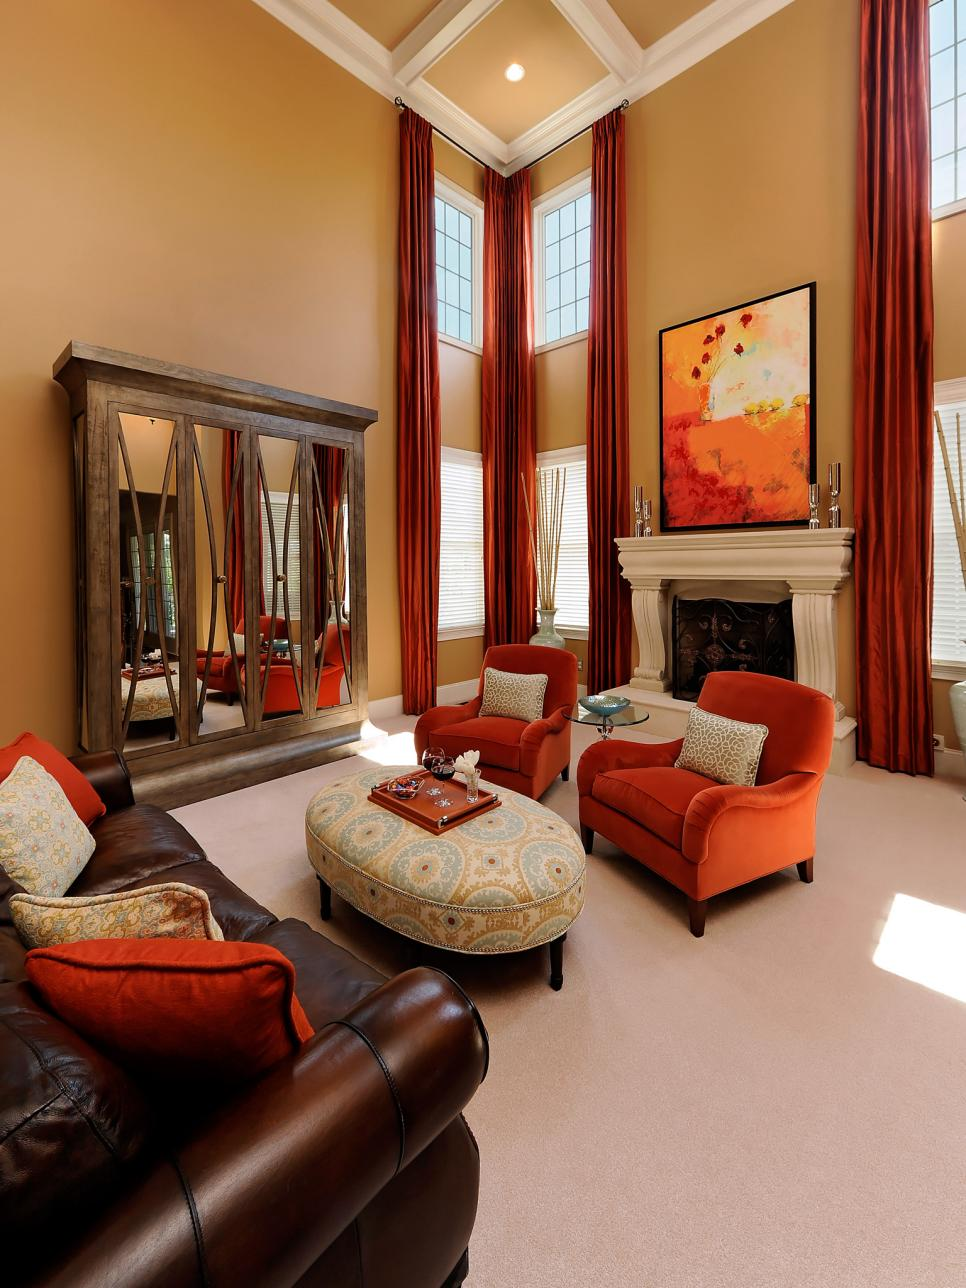 Home staging tips for fall hgtv - Airy brown and cream living room designs inspired from outdoor colors ...